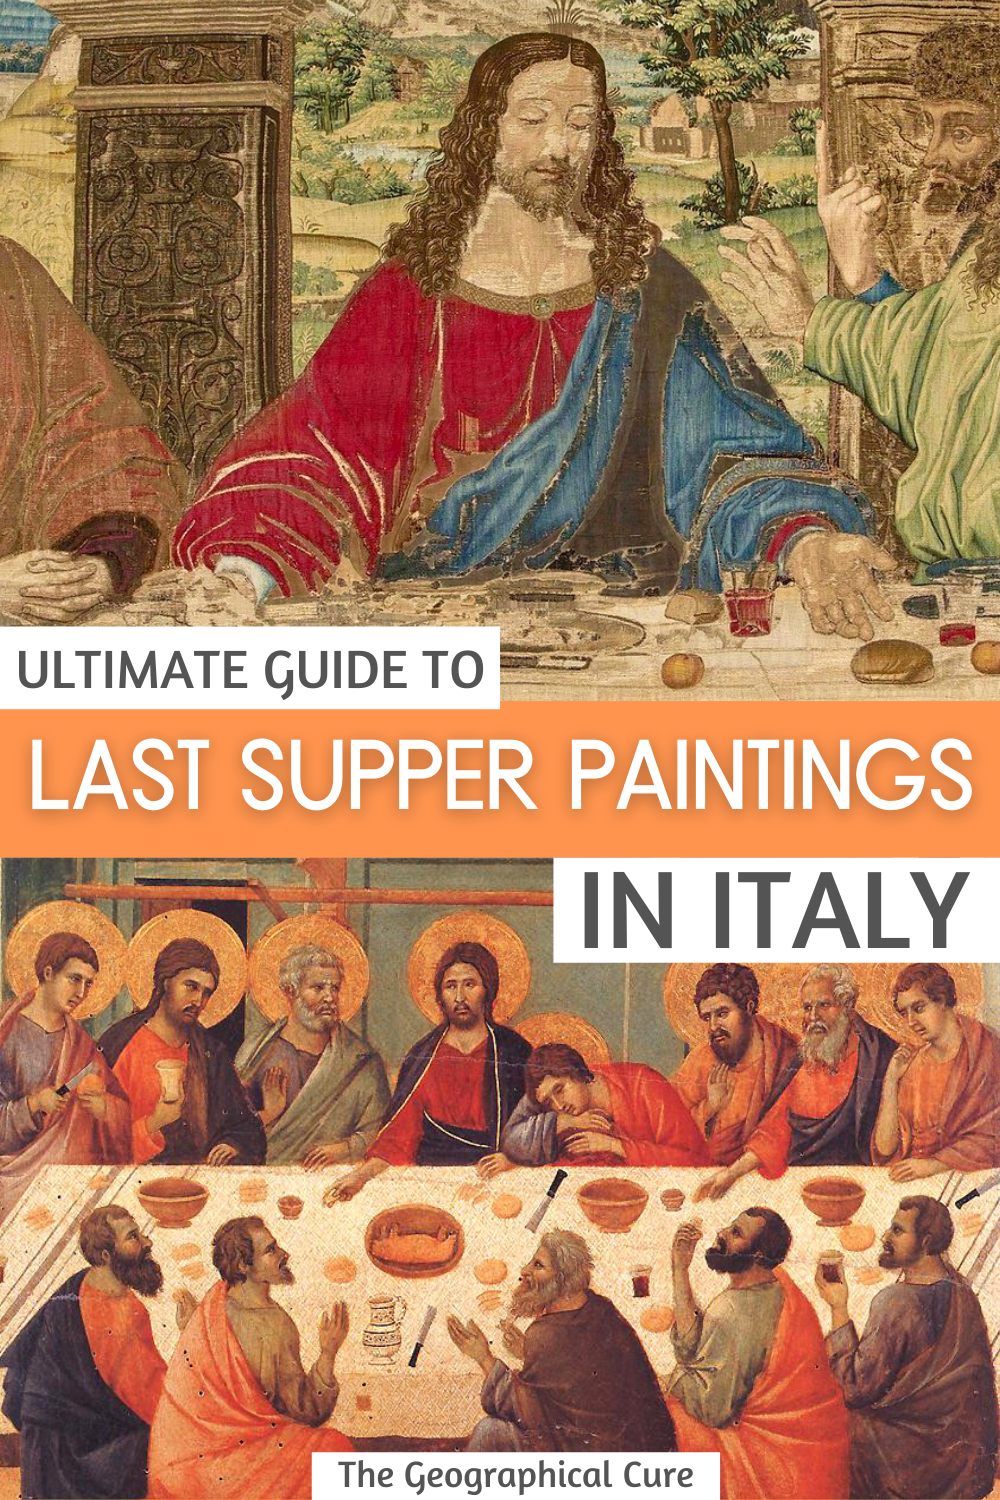 Virtual Tour of the 20 Best Last Supper Paintings in Italy